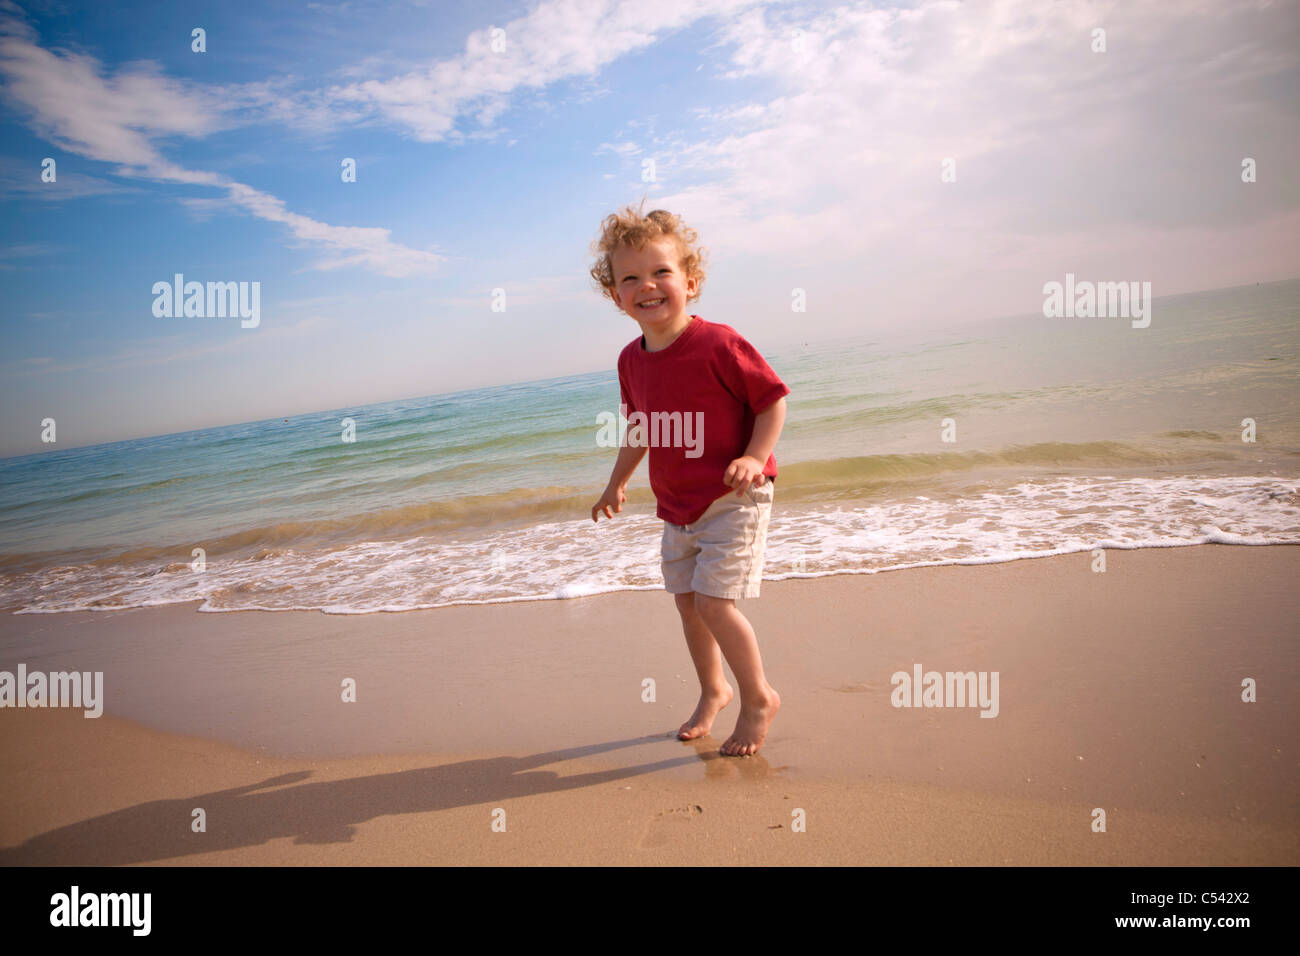 Child on the beach - Stock Image